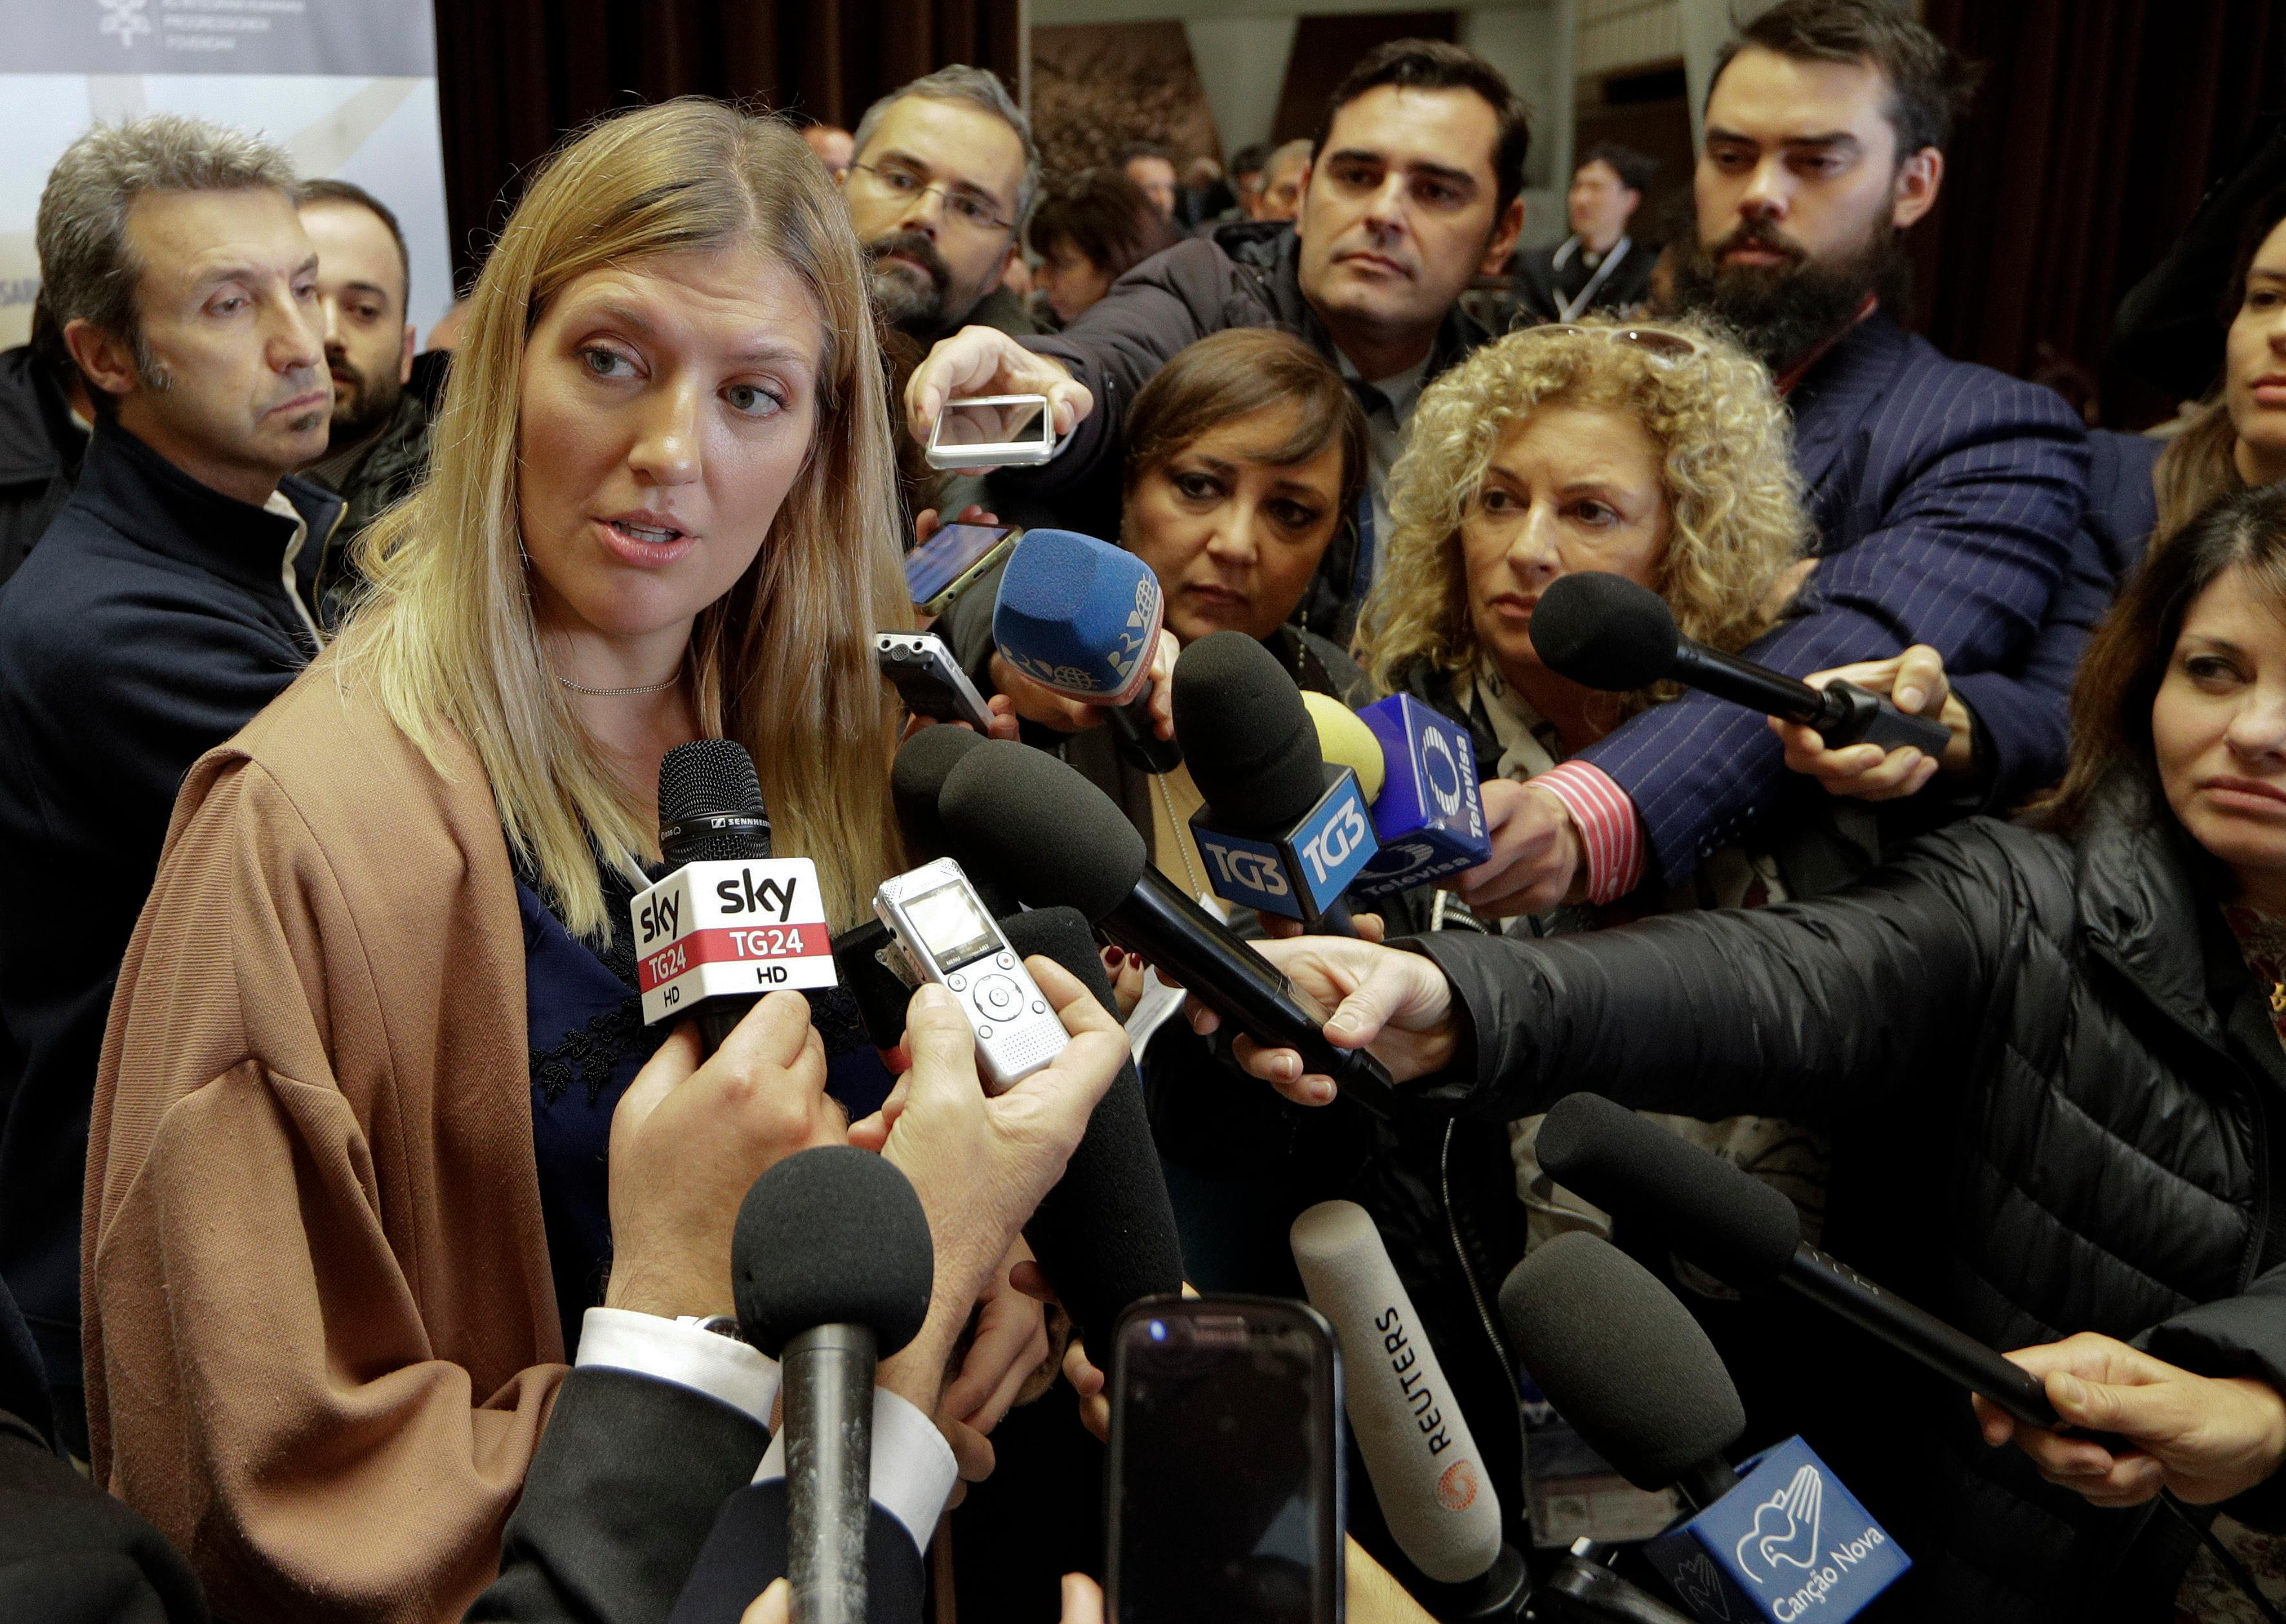 Executive Director of the International Campaign to Abolish Nuclear Weapons Beatrice Fihn talks to reporters during a break of a conference on nuclear disarmament, at the Vatican, Friday, Nov. 10, 2017. The Vatican hosted Nobel laureates, U.N. and NATO officials and a handful of nuclear powers at a conference aimed at galvanizing support for a global shift from the Cold War era policy of nuclear deterrence to one of total nuclear disarmament.(AP Photo/Andrew Medichini3